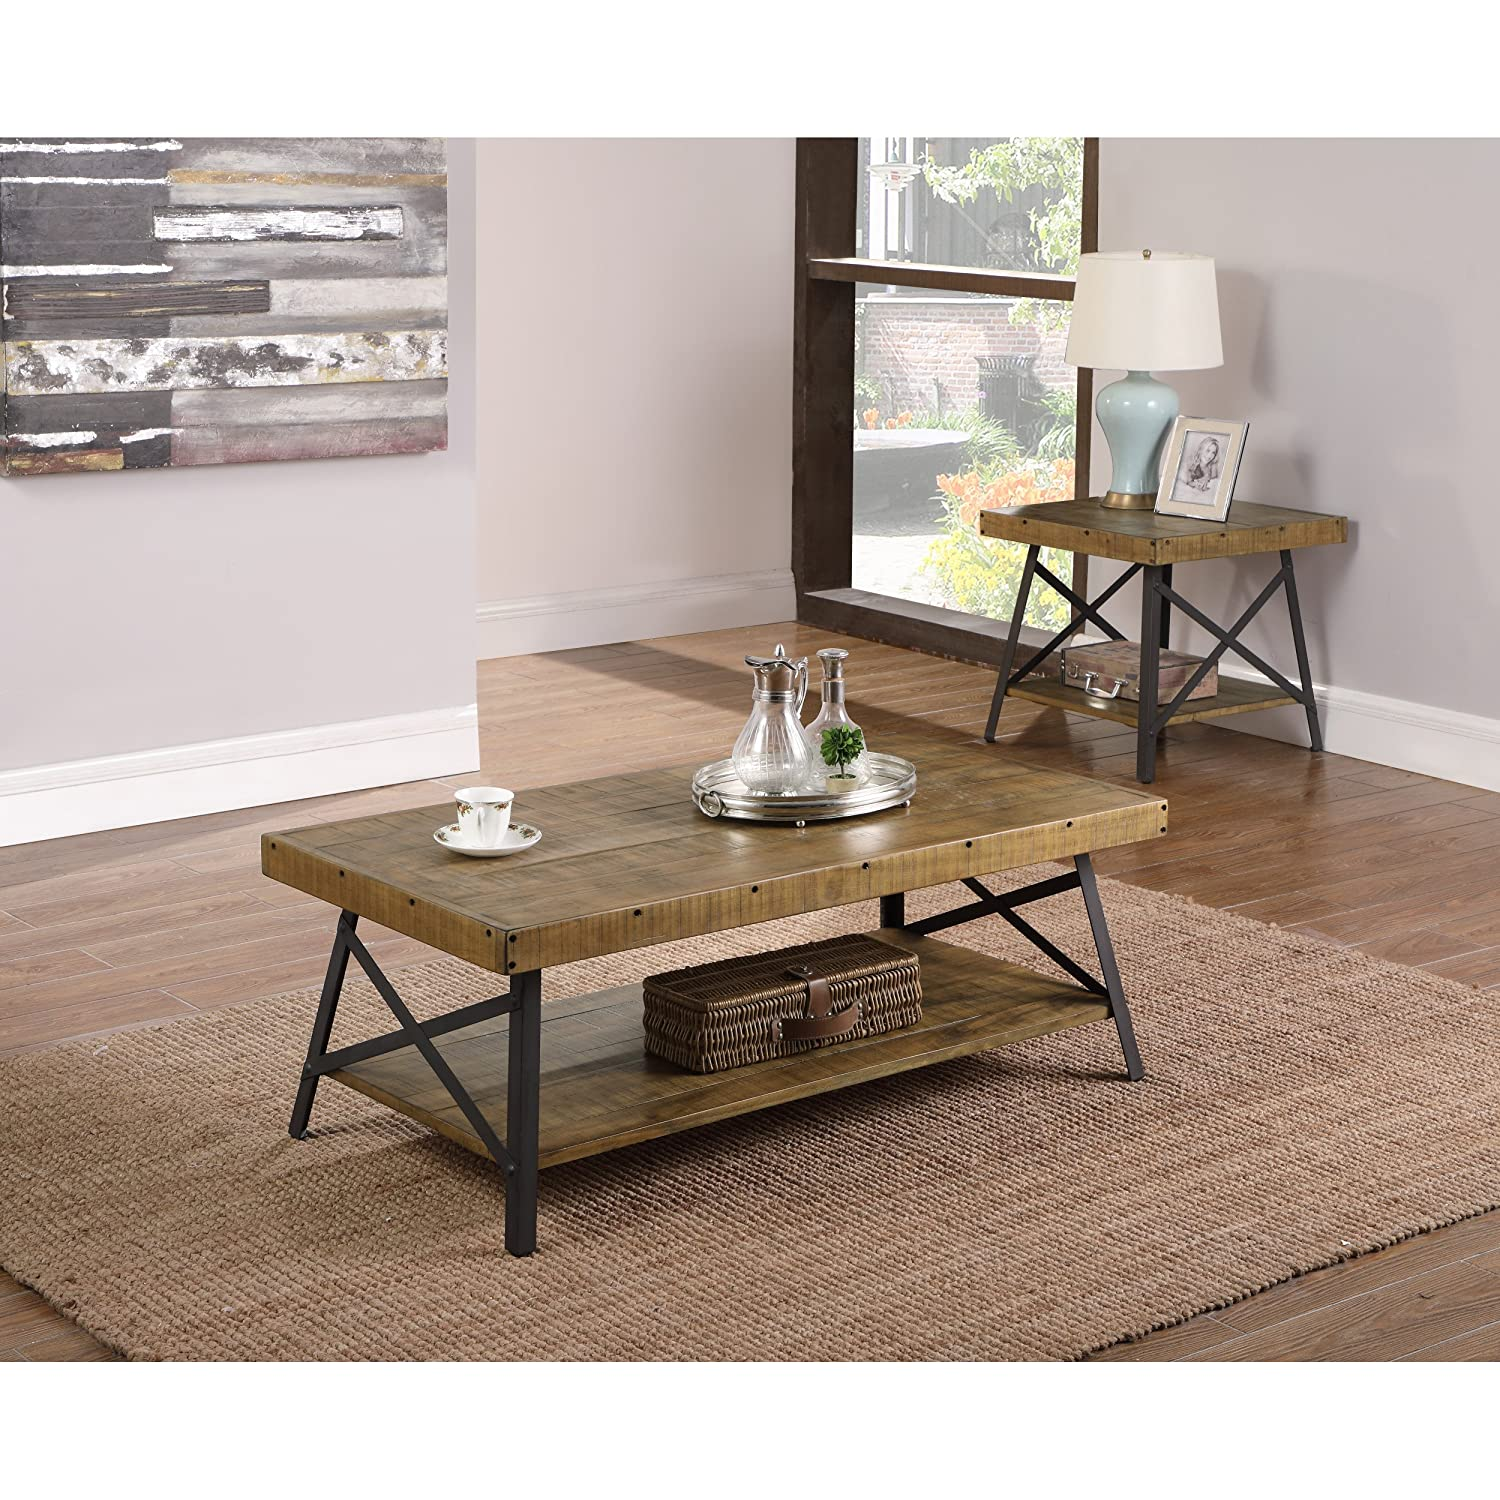 Amazon emerald home t100p 2 chandler sofa table natural amazon emerald home t100p 2 chandler sofa table natural kitchen dining geotapseo Image collections